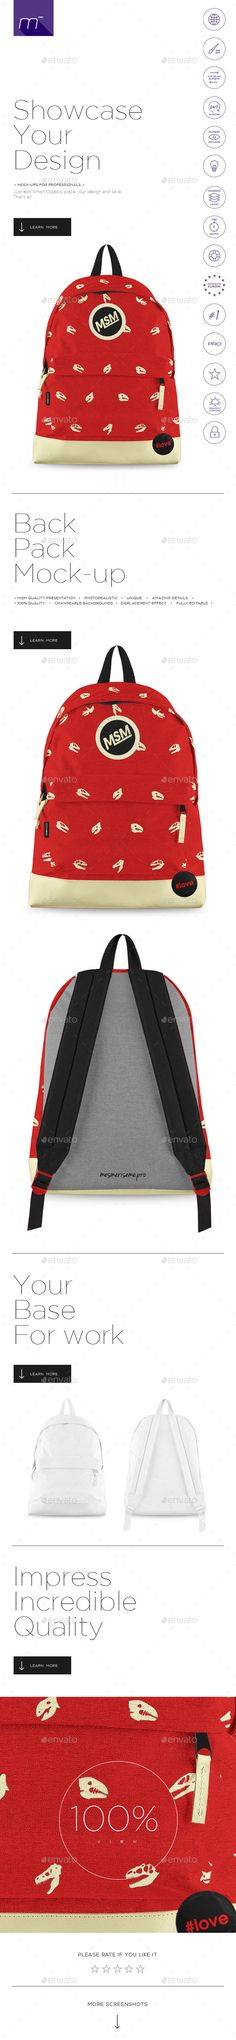 dcb9343c28 Buy Backpack Mock-up by mesmeriseme pro on GraphicRiver. About If you are  searching mock-ups for professionals